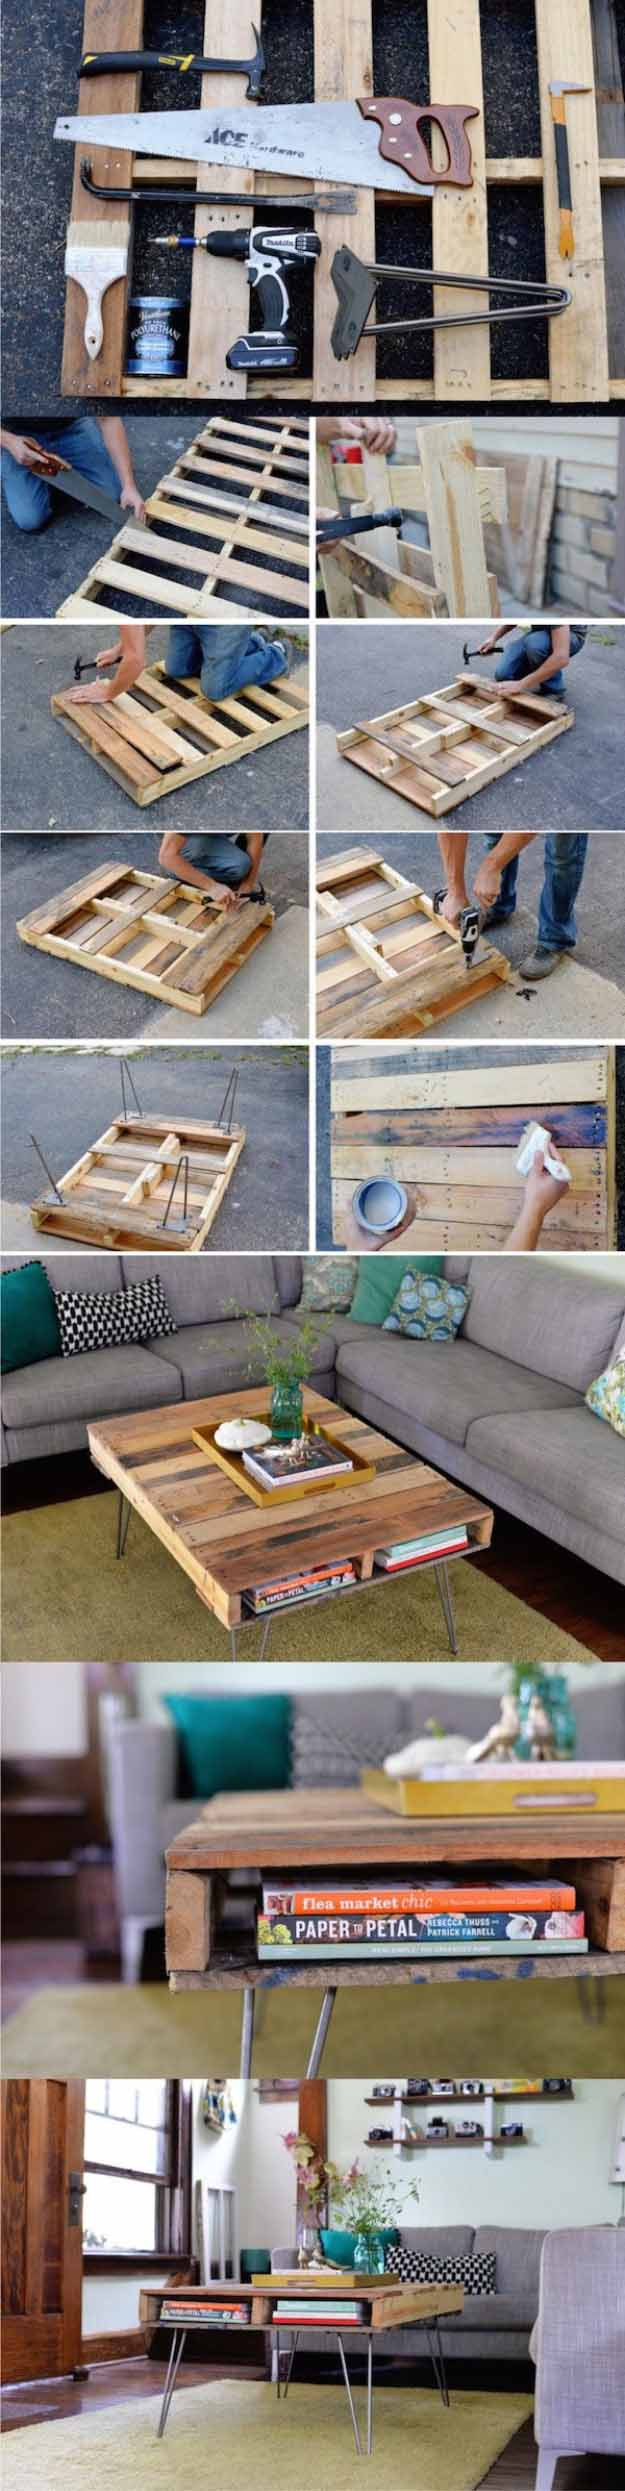 16-DIY-Coffee-Table-Projects-3